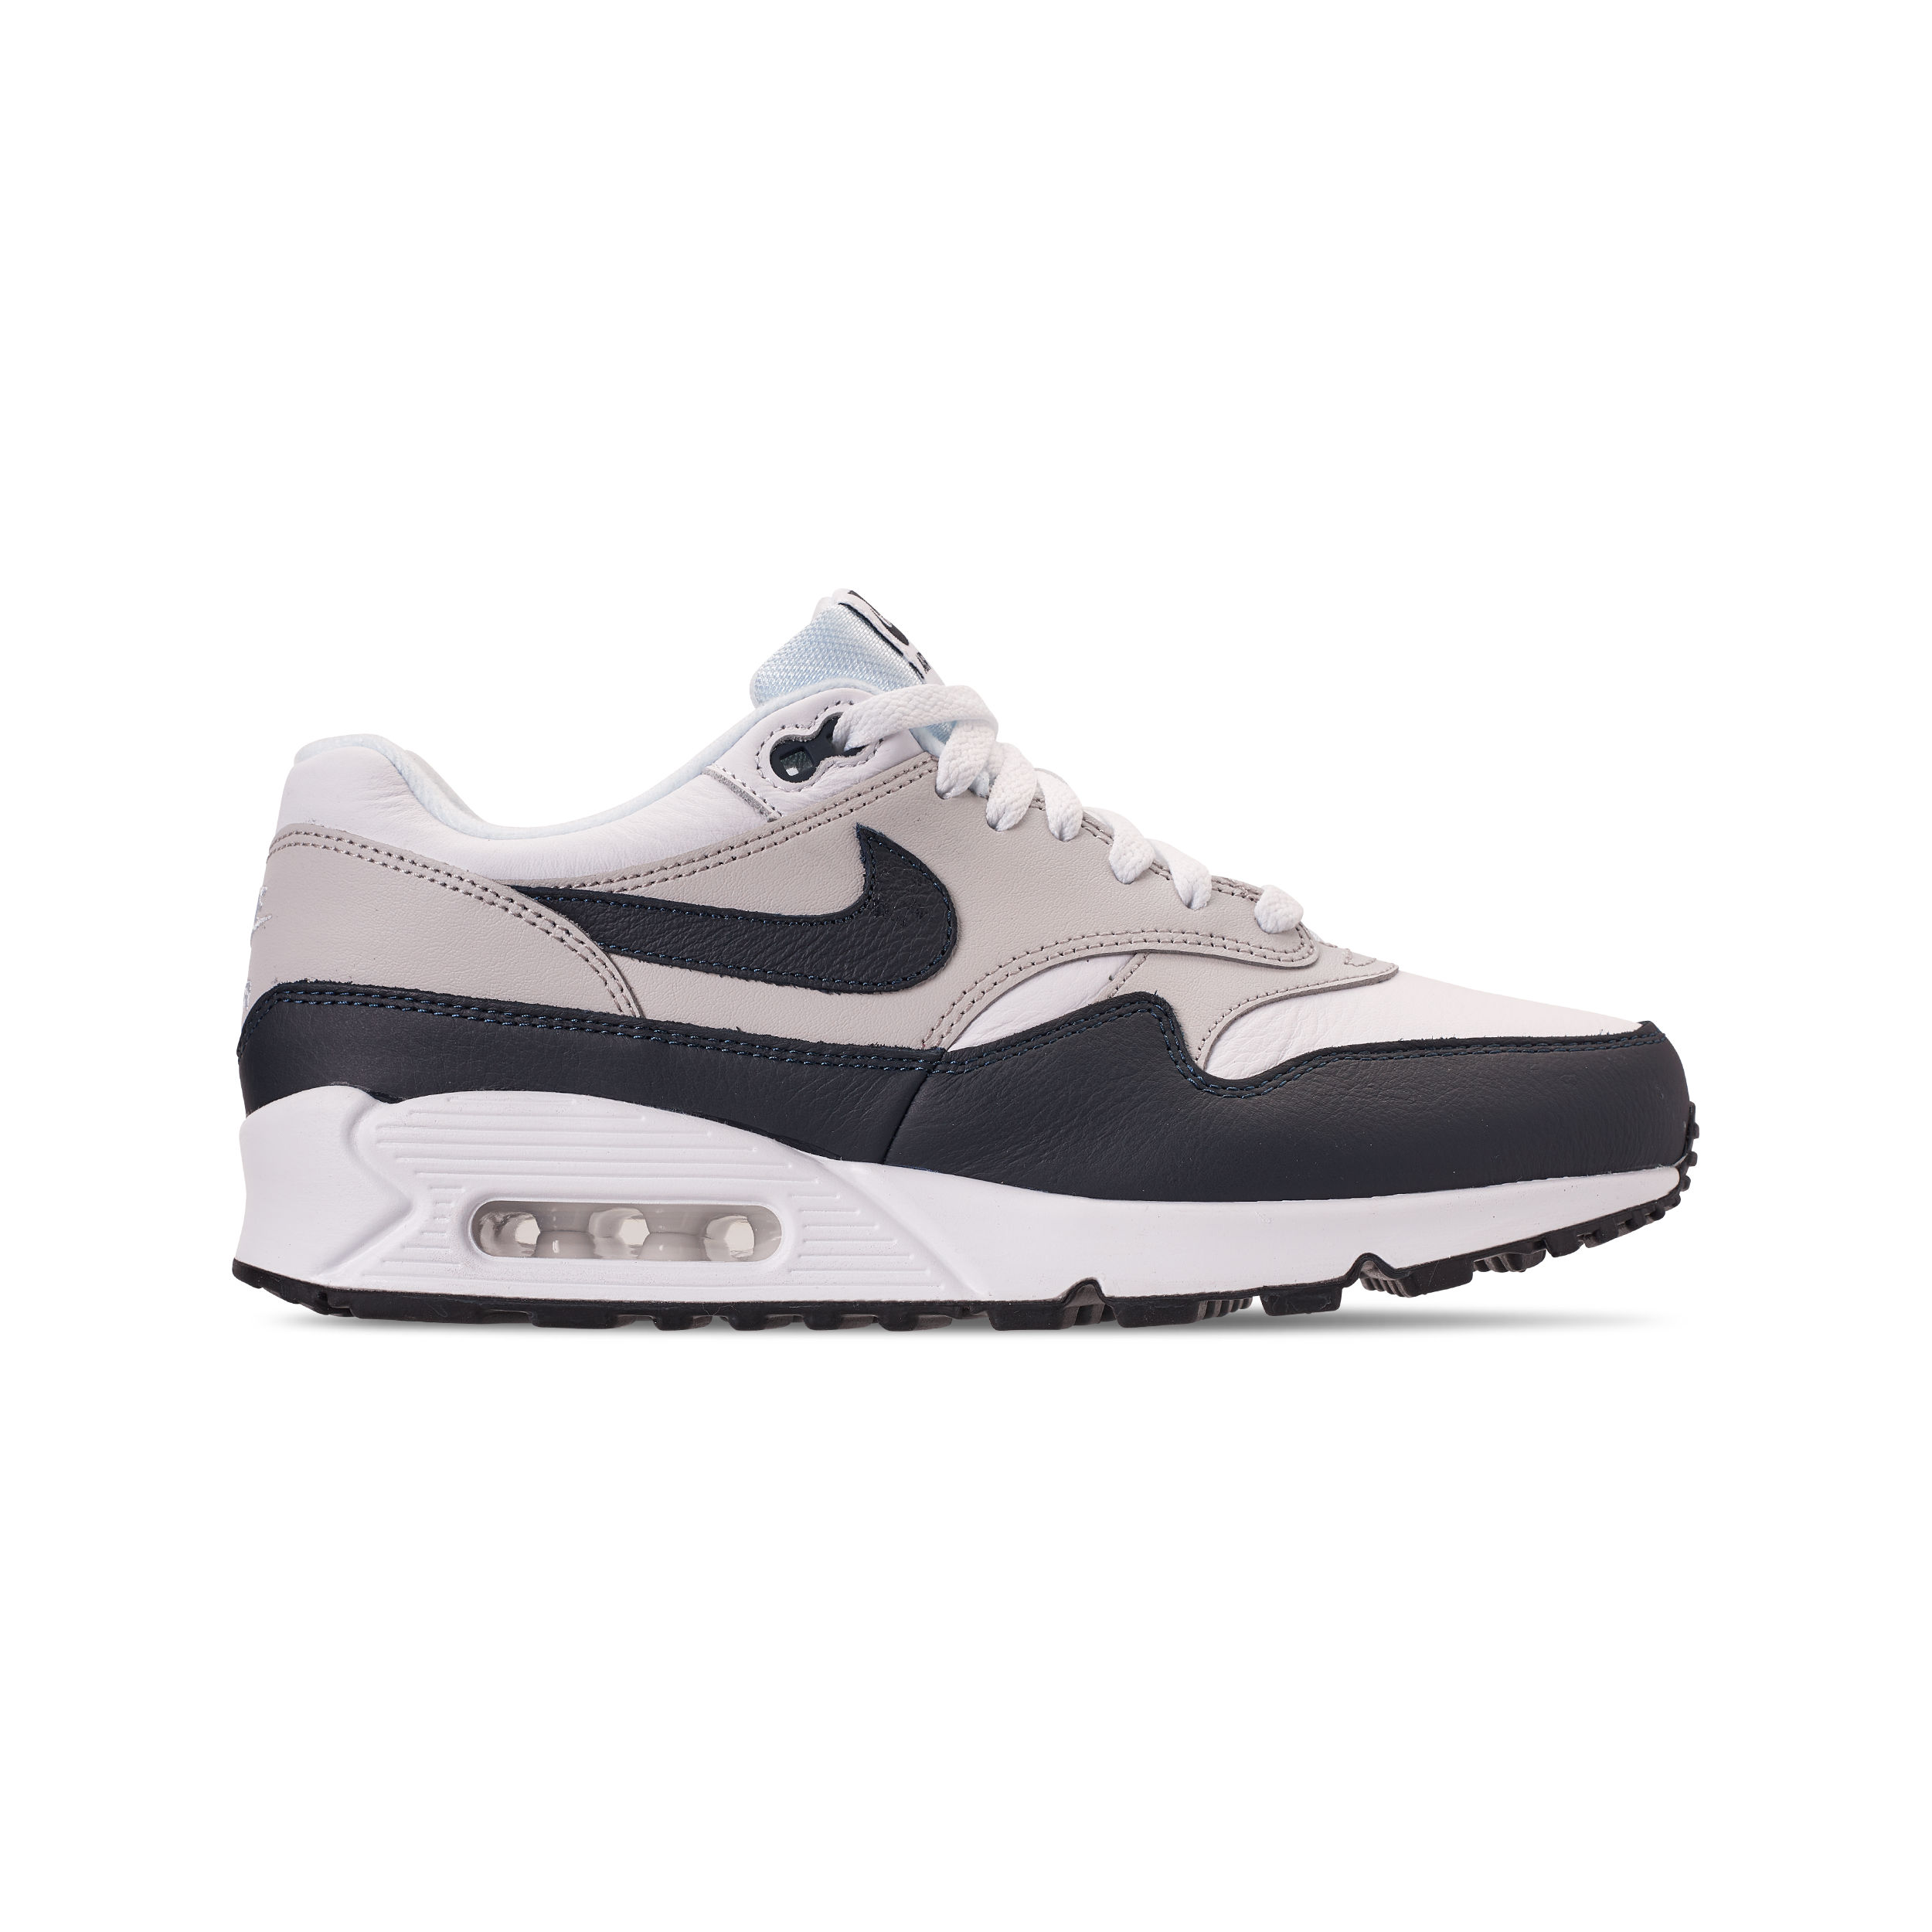 NIKE AIR MAX 90:1 WHITE:DARK OBSIDIAN NEUTRAL GREY BLACK 2